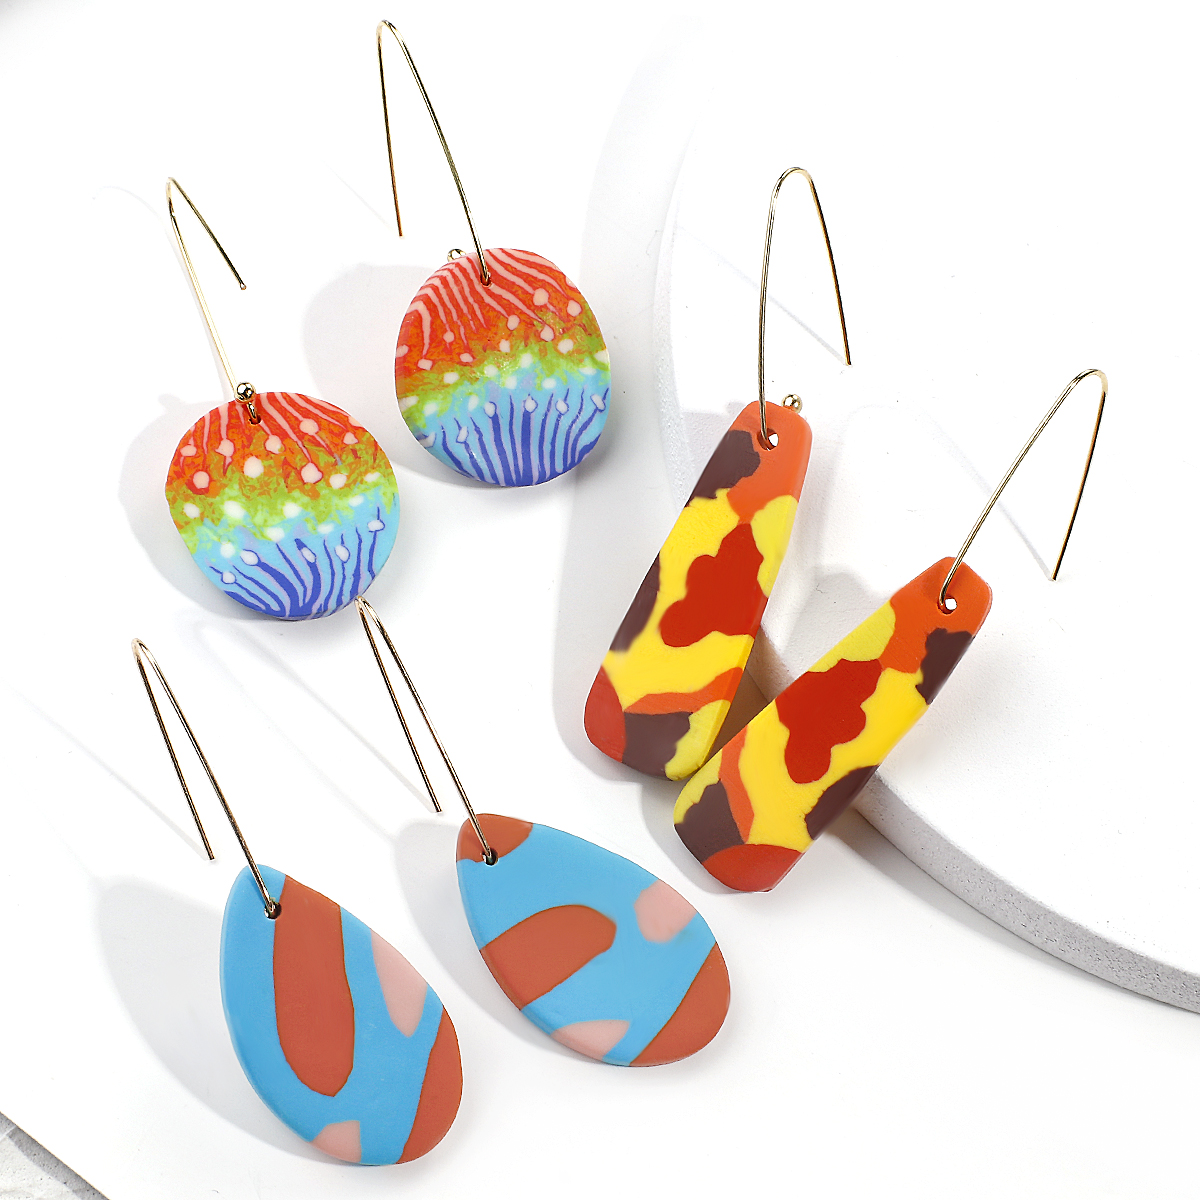 AENSOA 2020 New Unique Multicolor Drop Earrings For Women  Polymer Clay Geometric Statement Earrings Fashion Jewelry Gift Hot